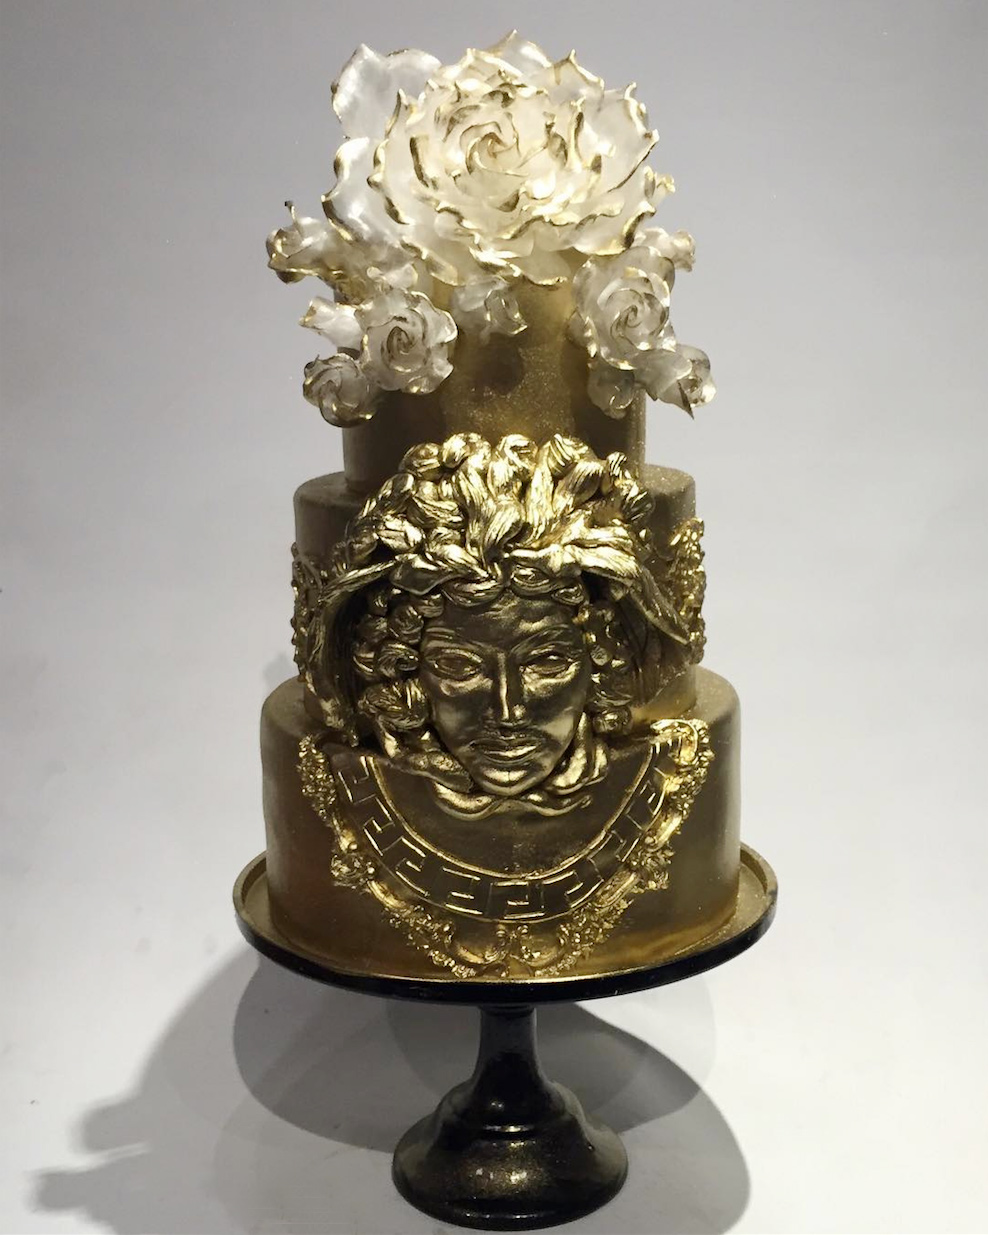 Lady Gaga Gifted This Super Glam Birthday Cake to One Lucky, Medusa-Loving Designer